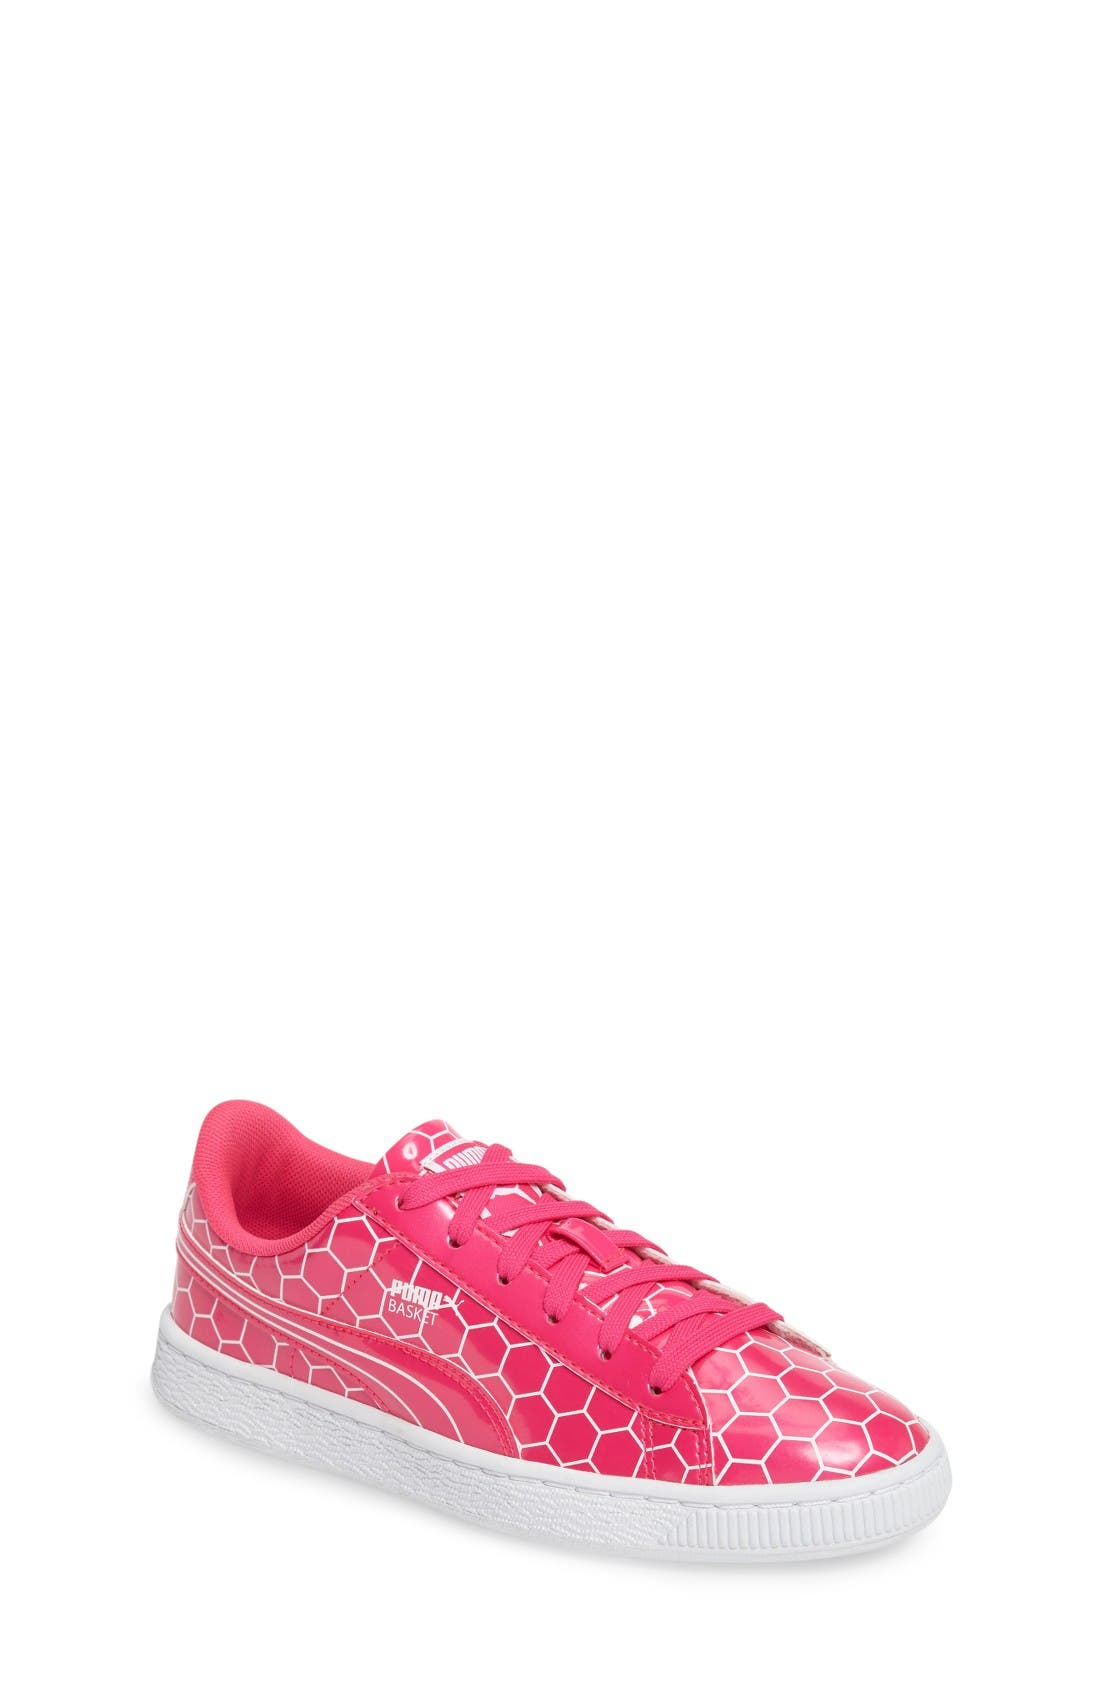 Basket Classic Ano Sneaker,                         Main,                         color, Pink Glo-Puma White